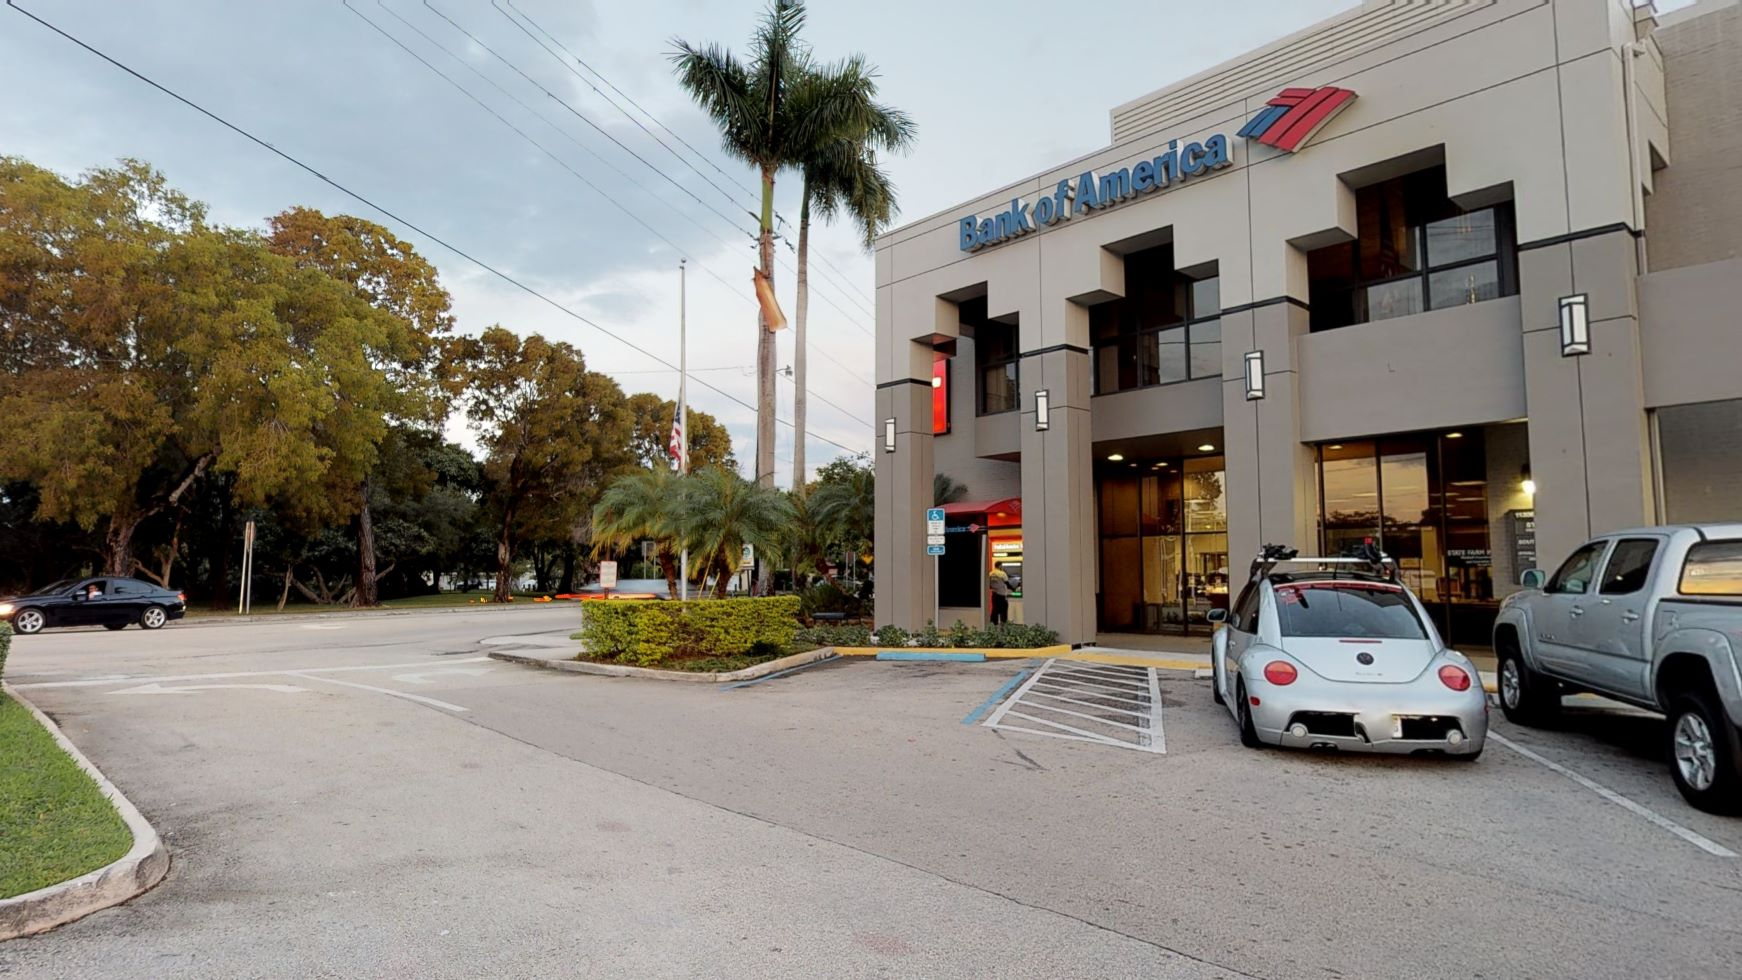 Bank of America financial center with walk-up ATM   11205 S Dixie Hwy, Pinecrest, FL 33156